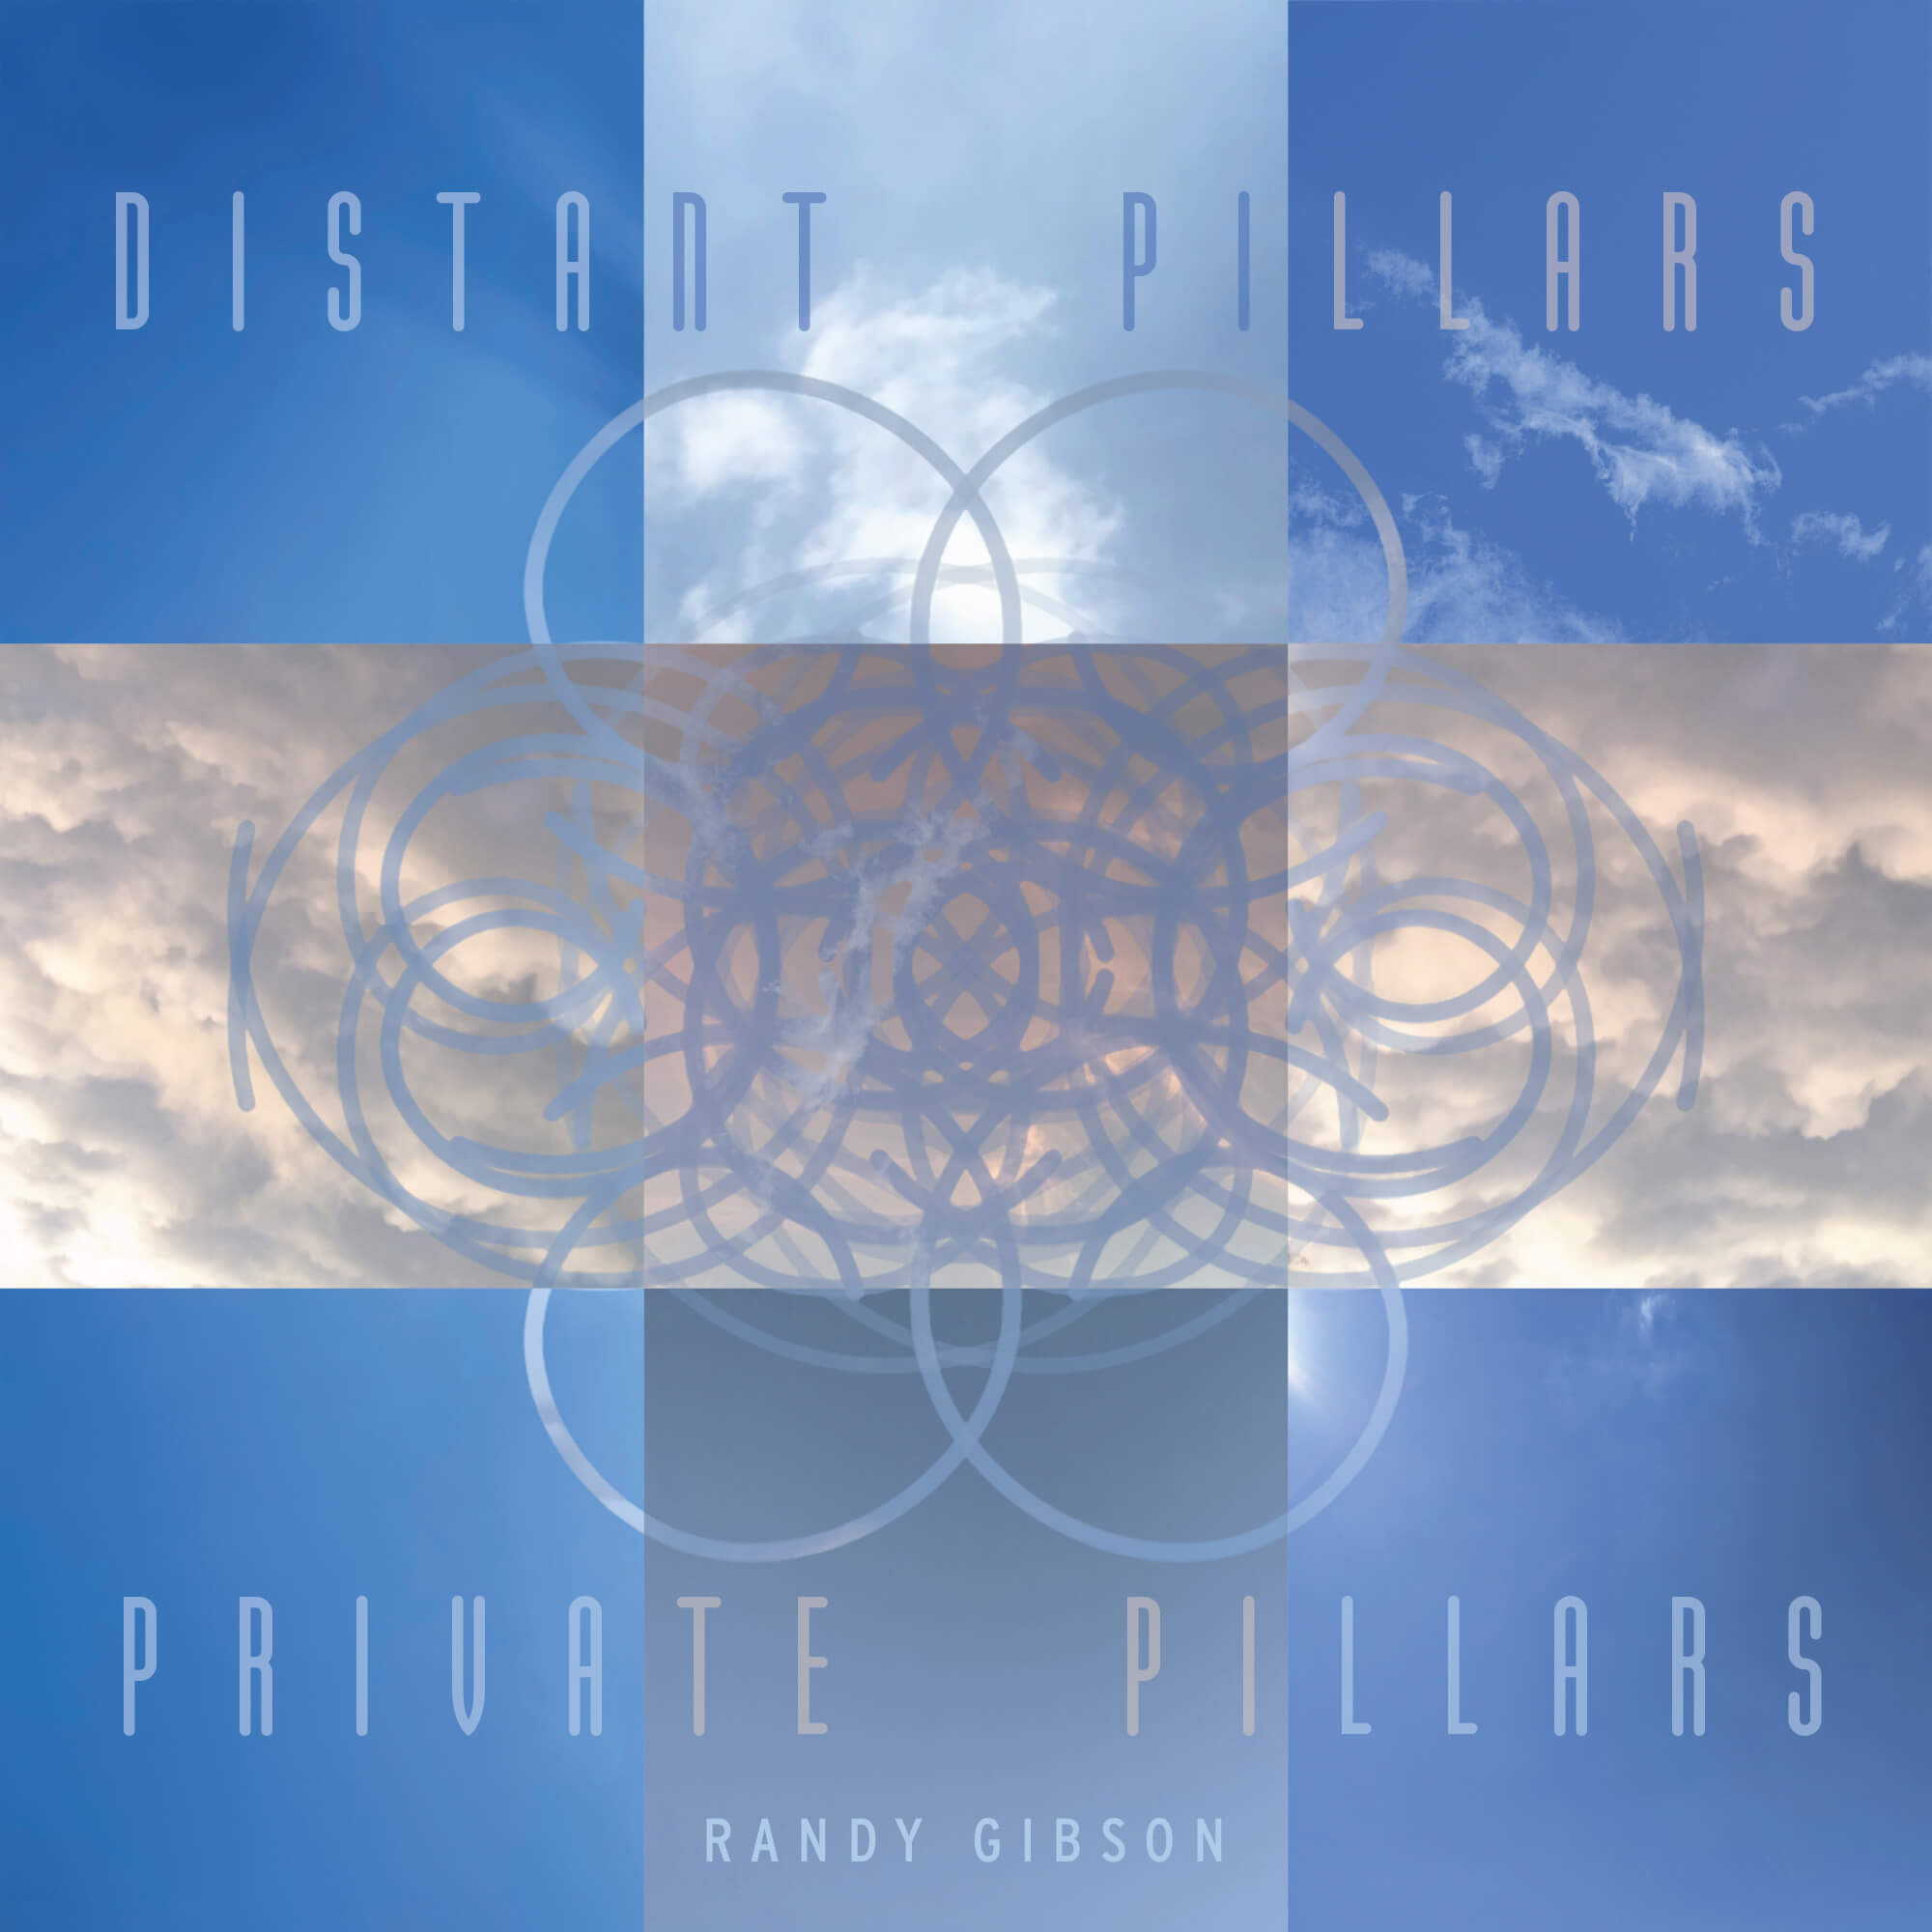 Randy Gibson's <em>Distant Pillars, Private Pillars</em>